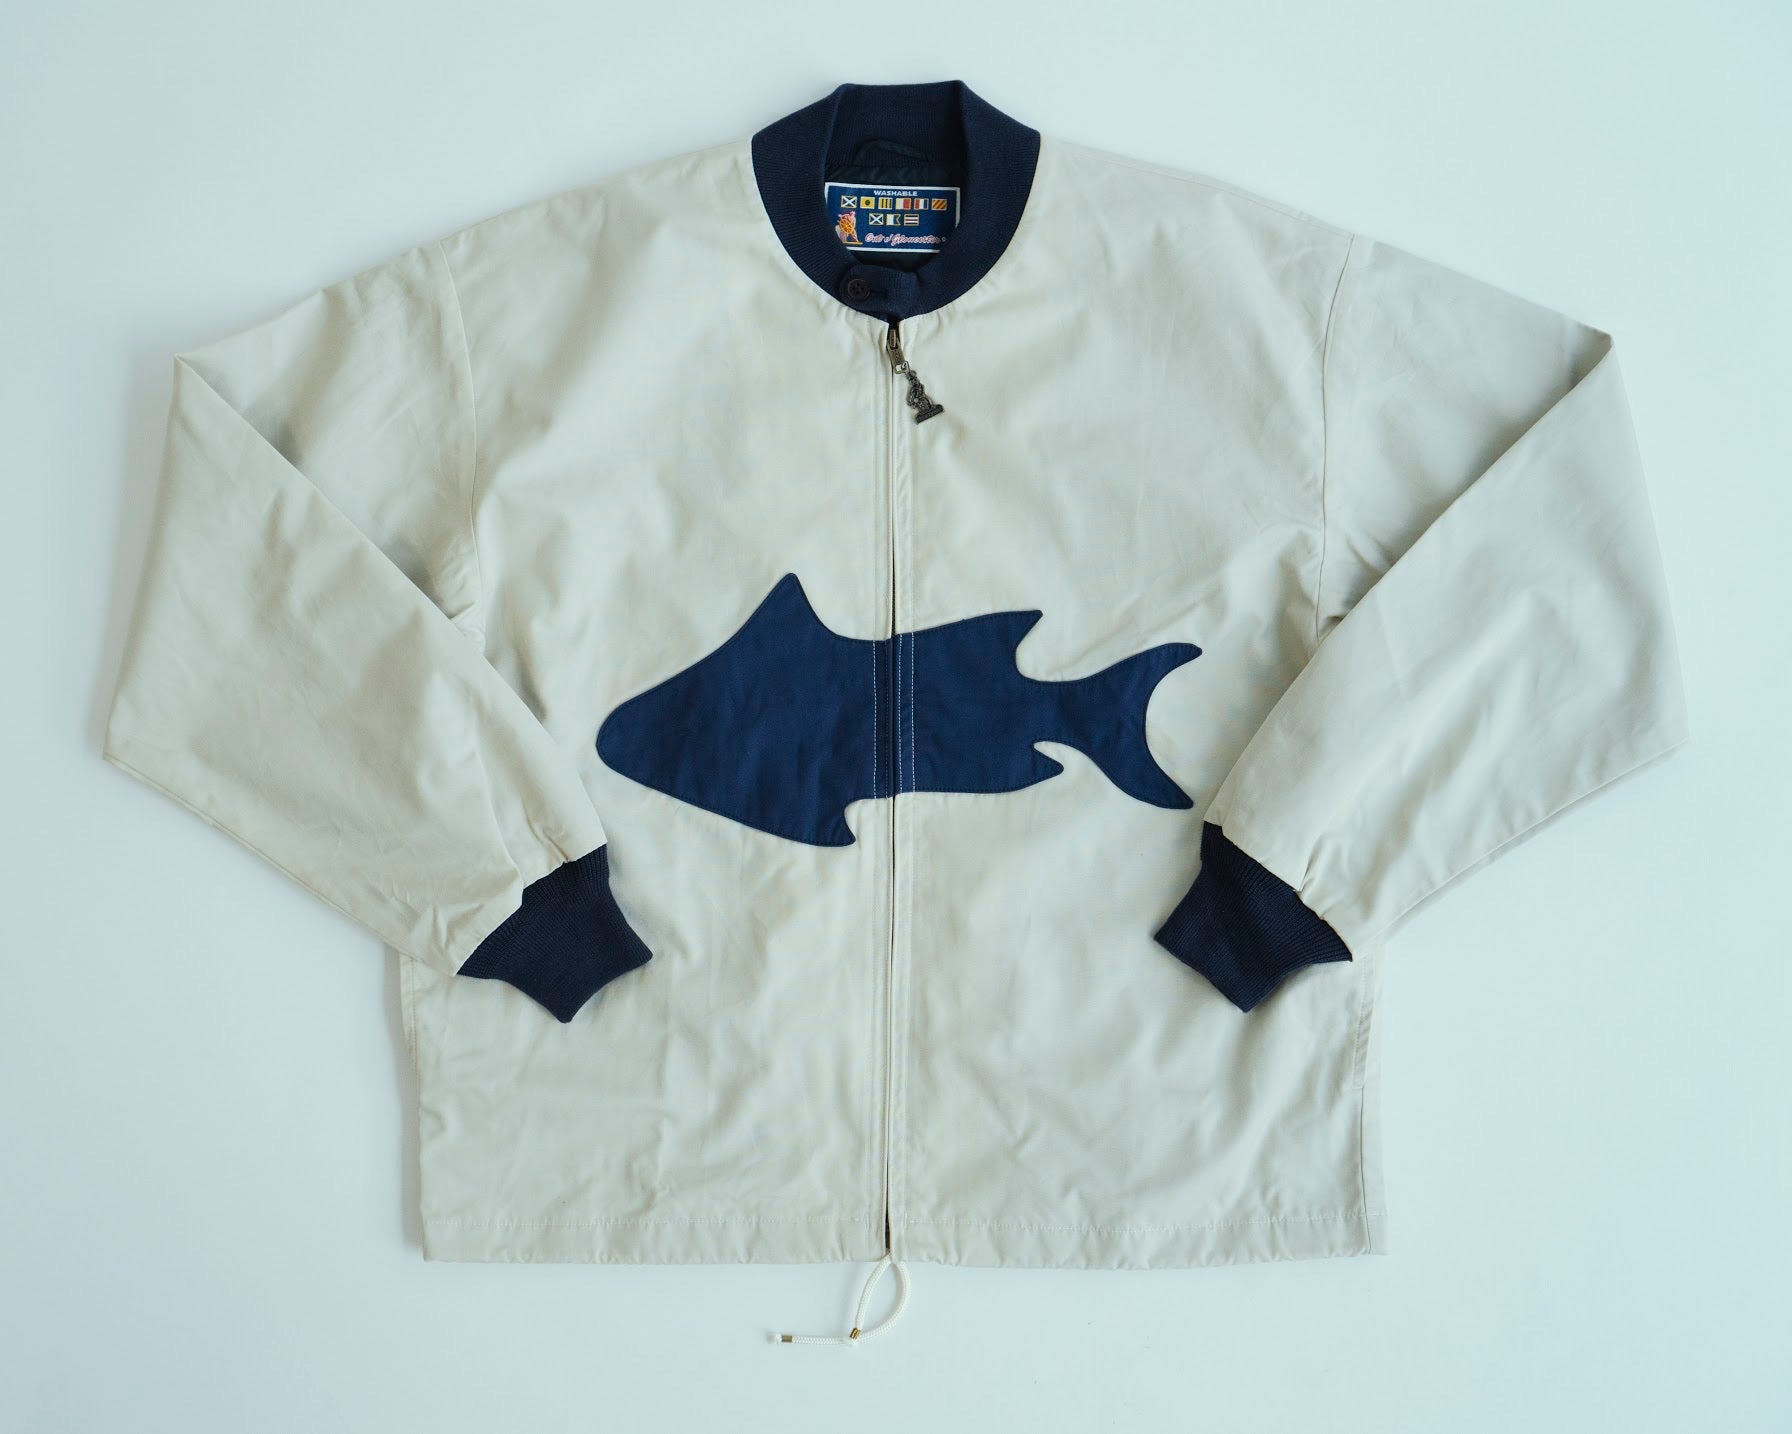 Mighty Mac x Anatomica Boat Jacket Fish, Anatomica - The Signet Store